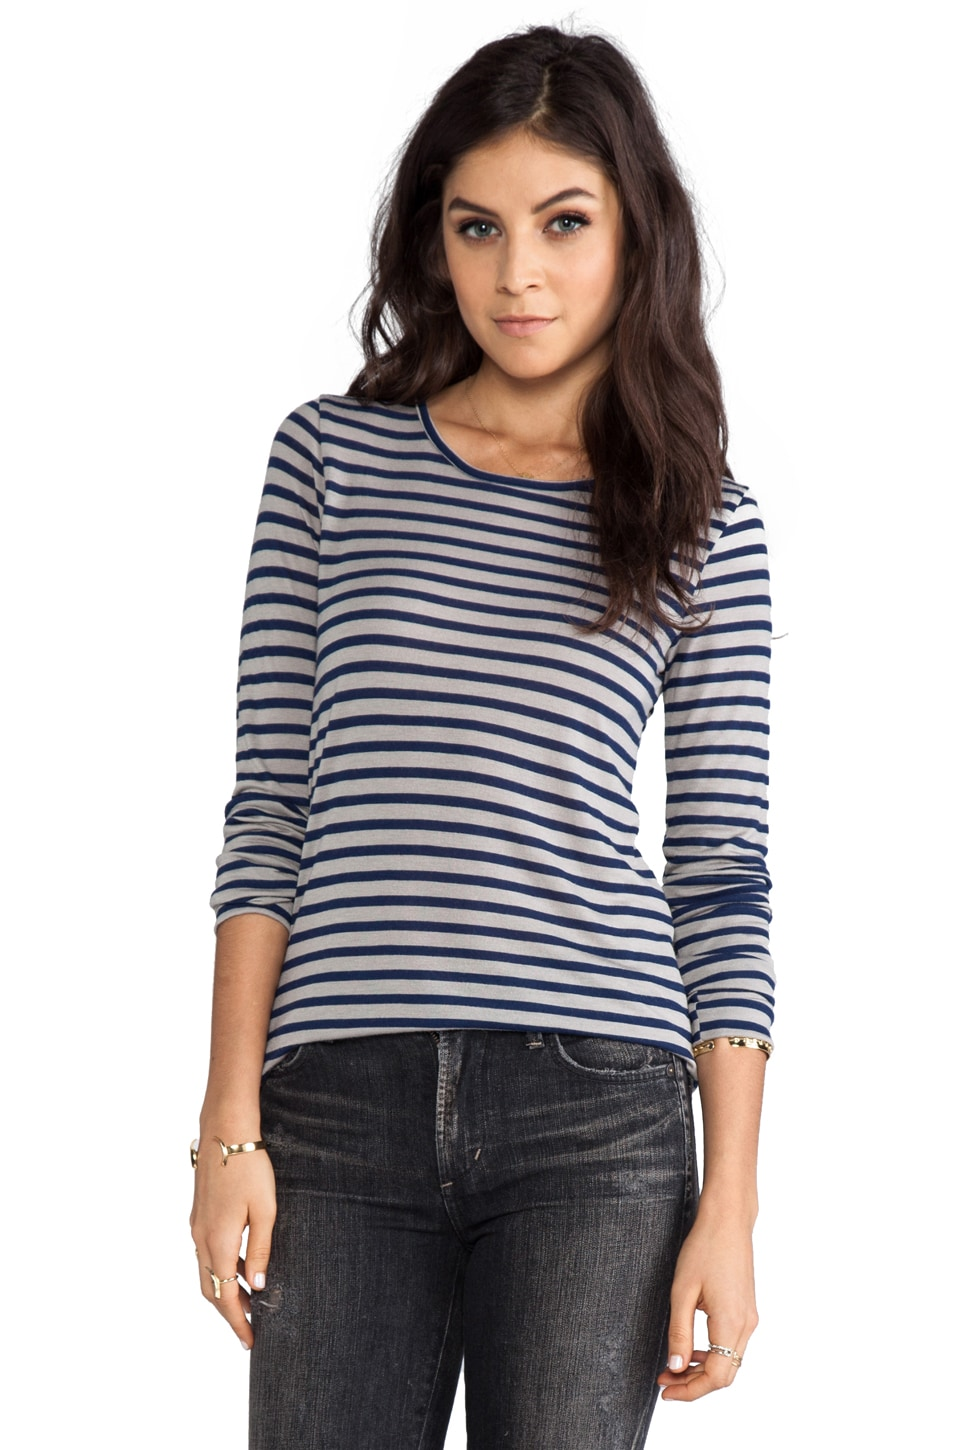 19 4t T-shirt Manches Longues en Grey/Navy Stripe